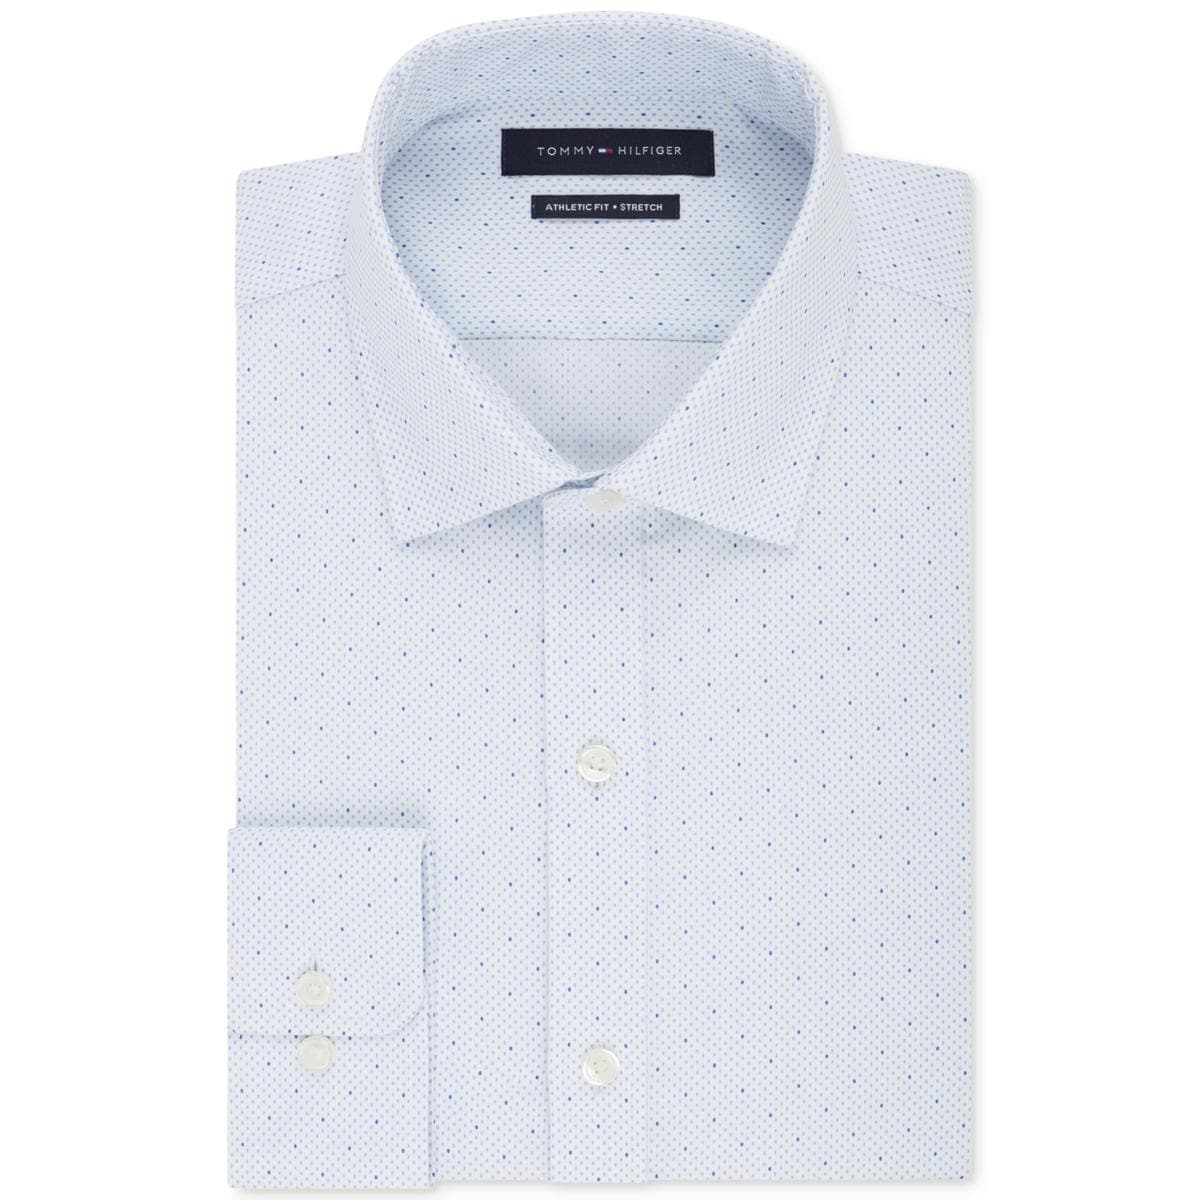 Shop Tommy Hilfiger Mens Dress Shirt Athletic Fit Non Iron Free